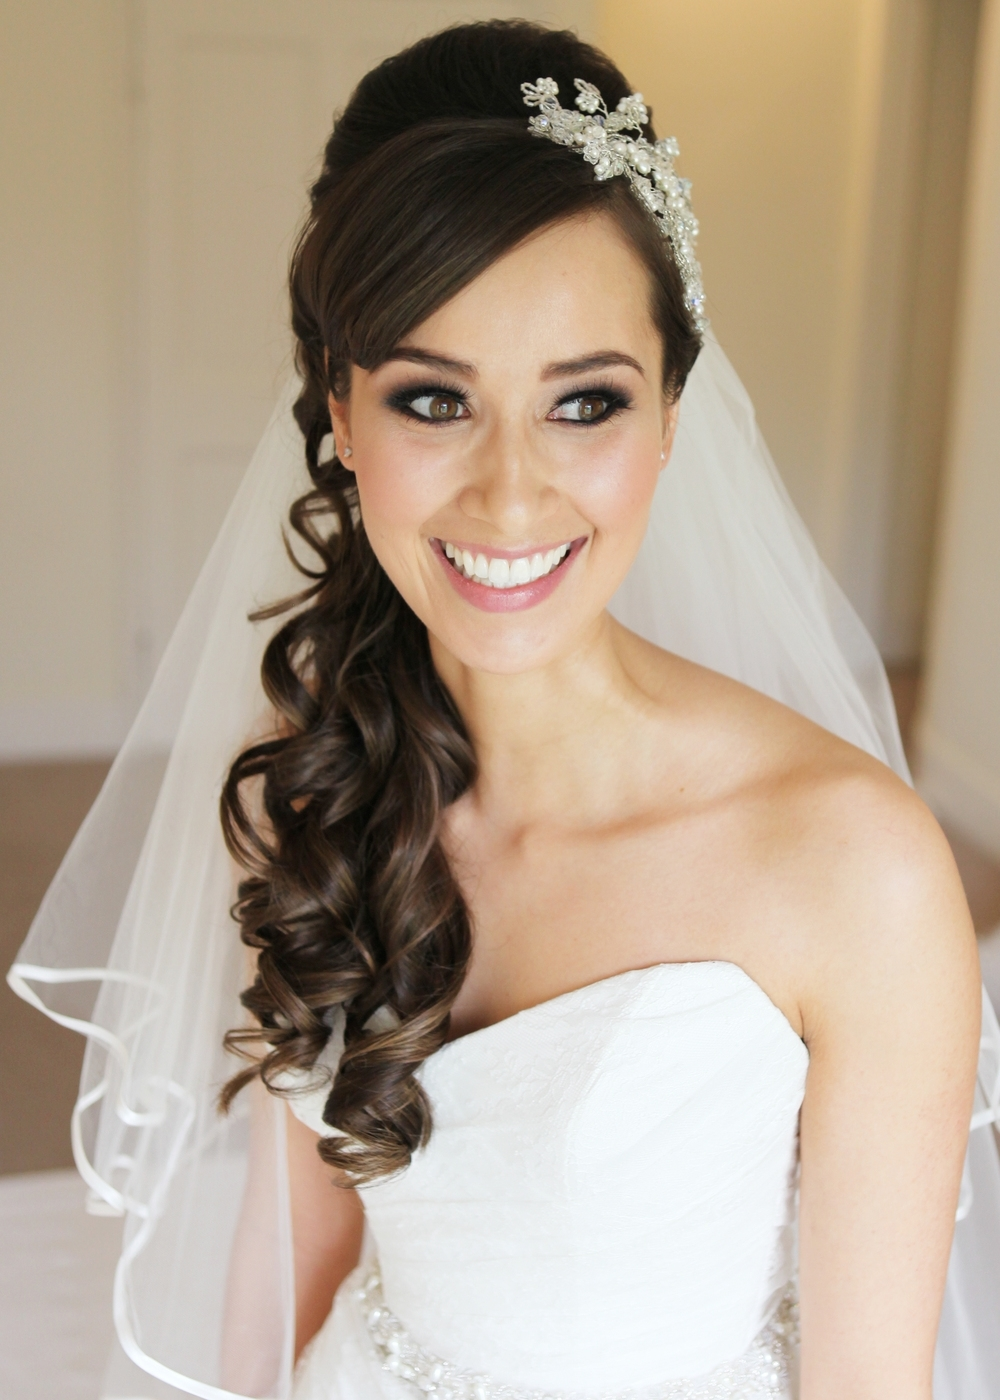 Wedding Hairstyles With Veil And Headpiece – Skyranreborn Pertaining To Recent Wedding Hairstyles With Headpiece (View 6 of 15)